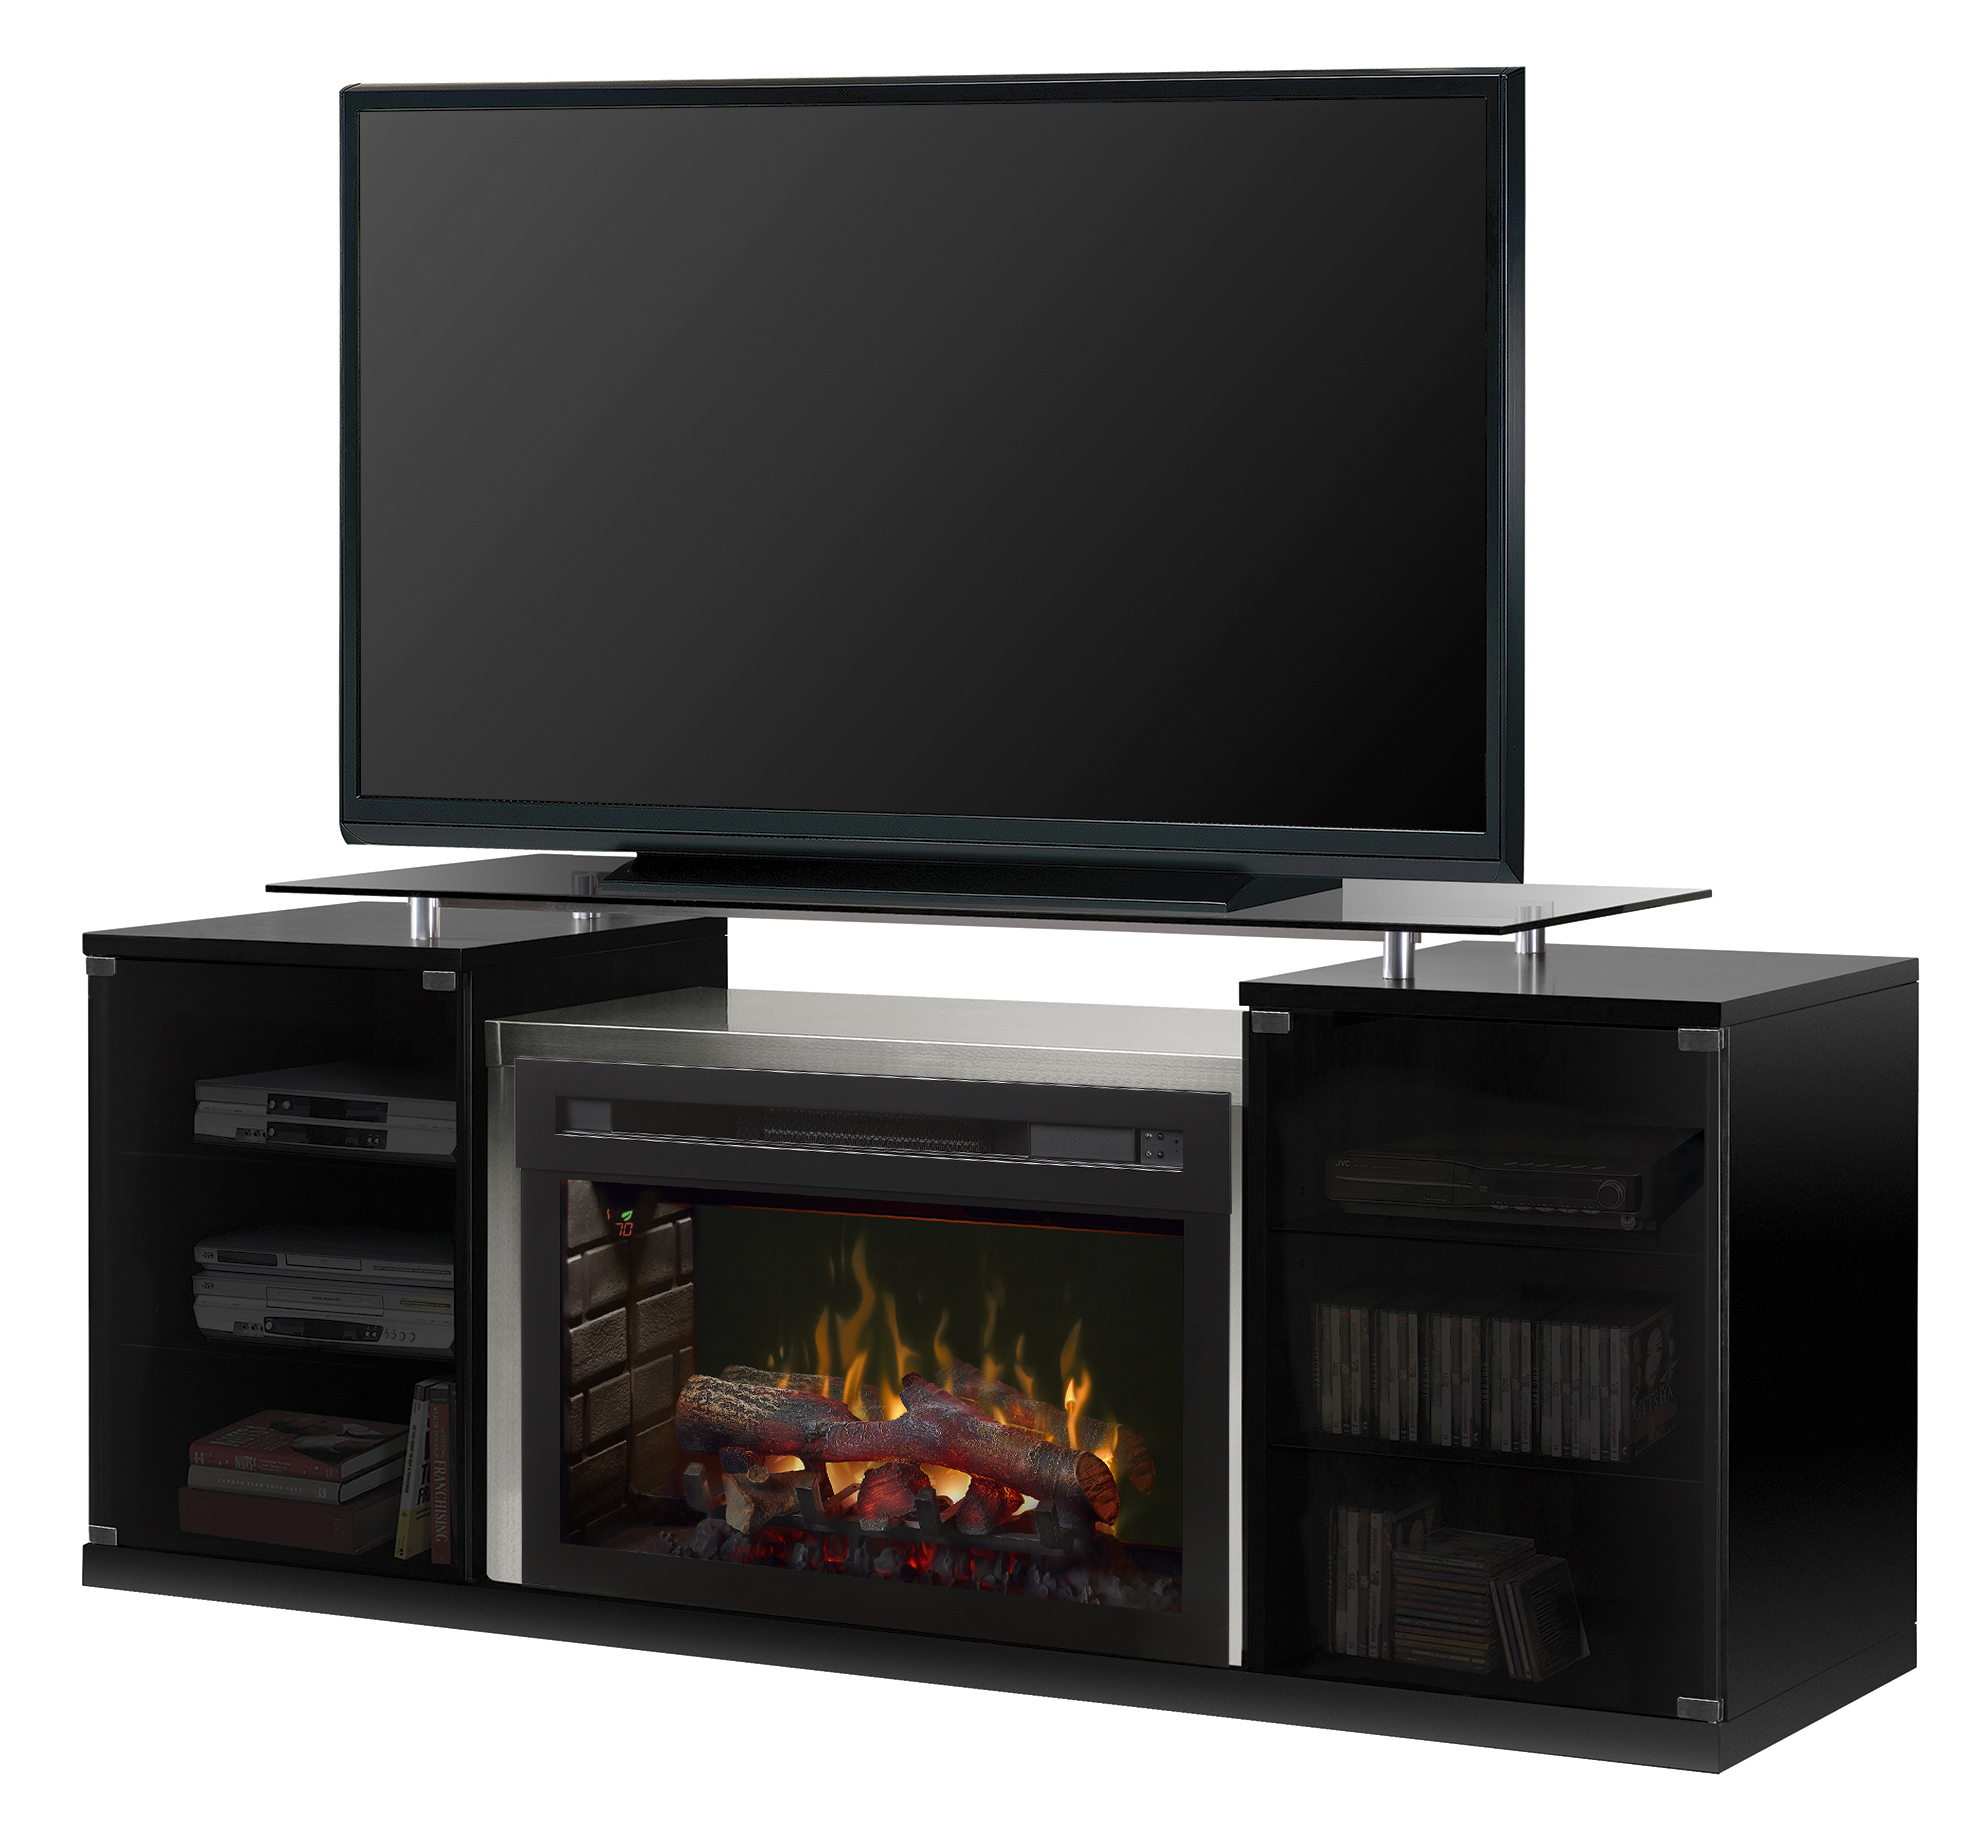 Walmart Black Electric Fireplace Dimplex Marana Media Console Log Electric Fireplace For Tvs Up To 55